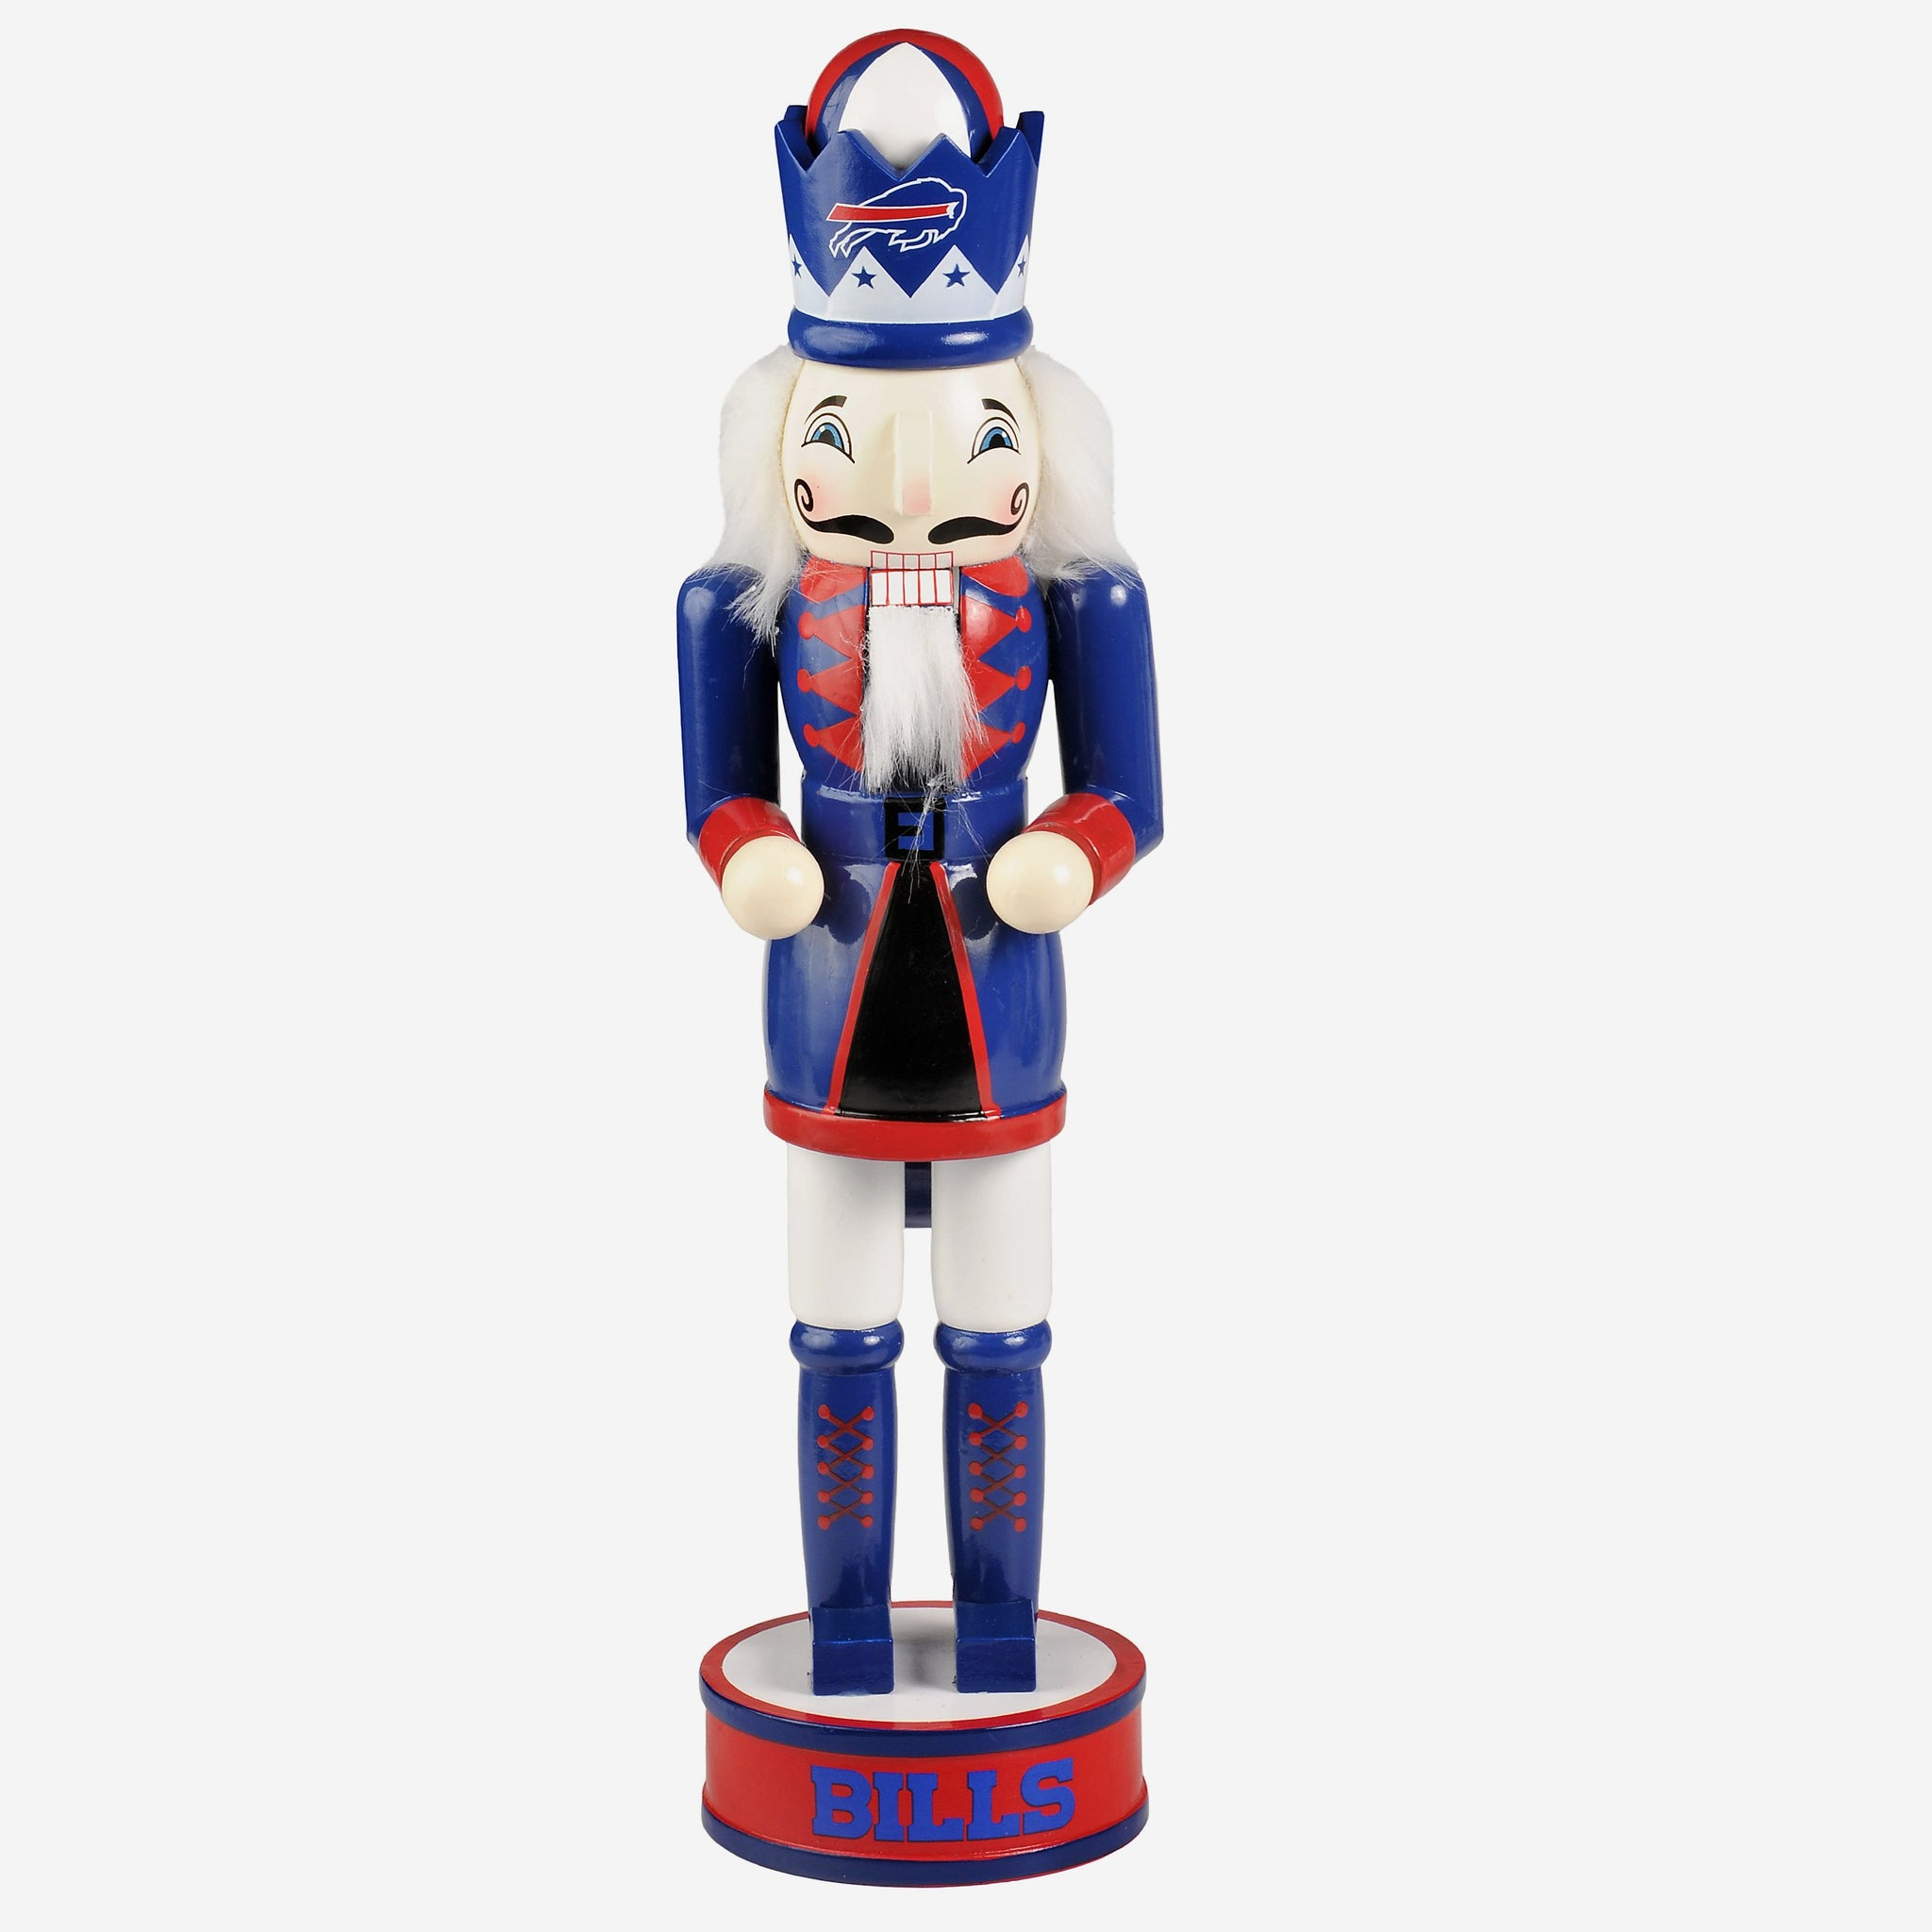 Buffalo Bills Holiday Nutcracker FOCO - FOCO.com